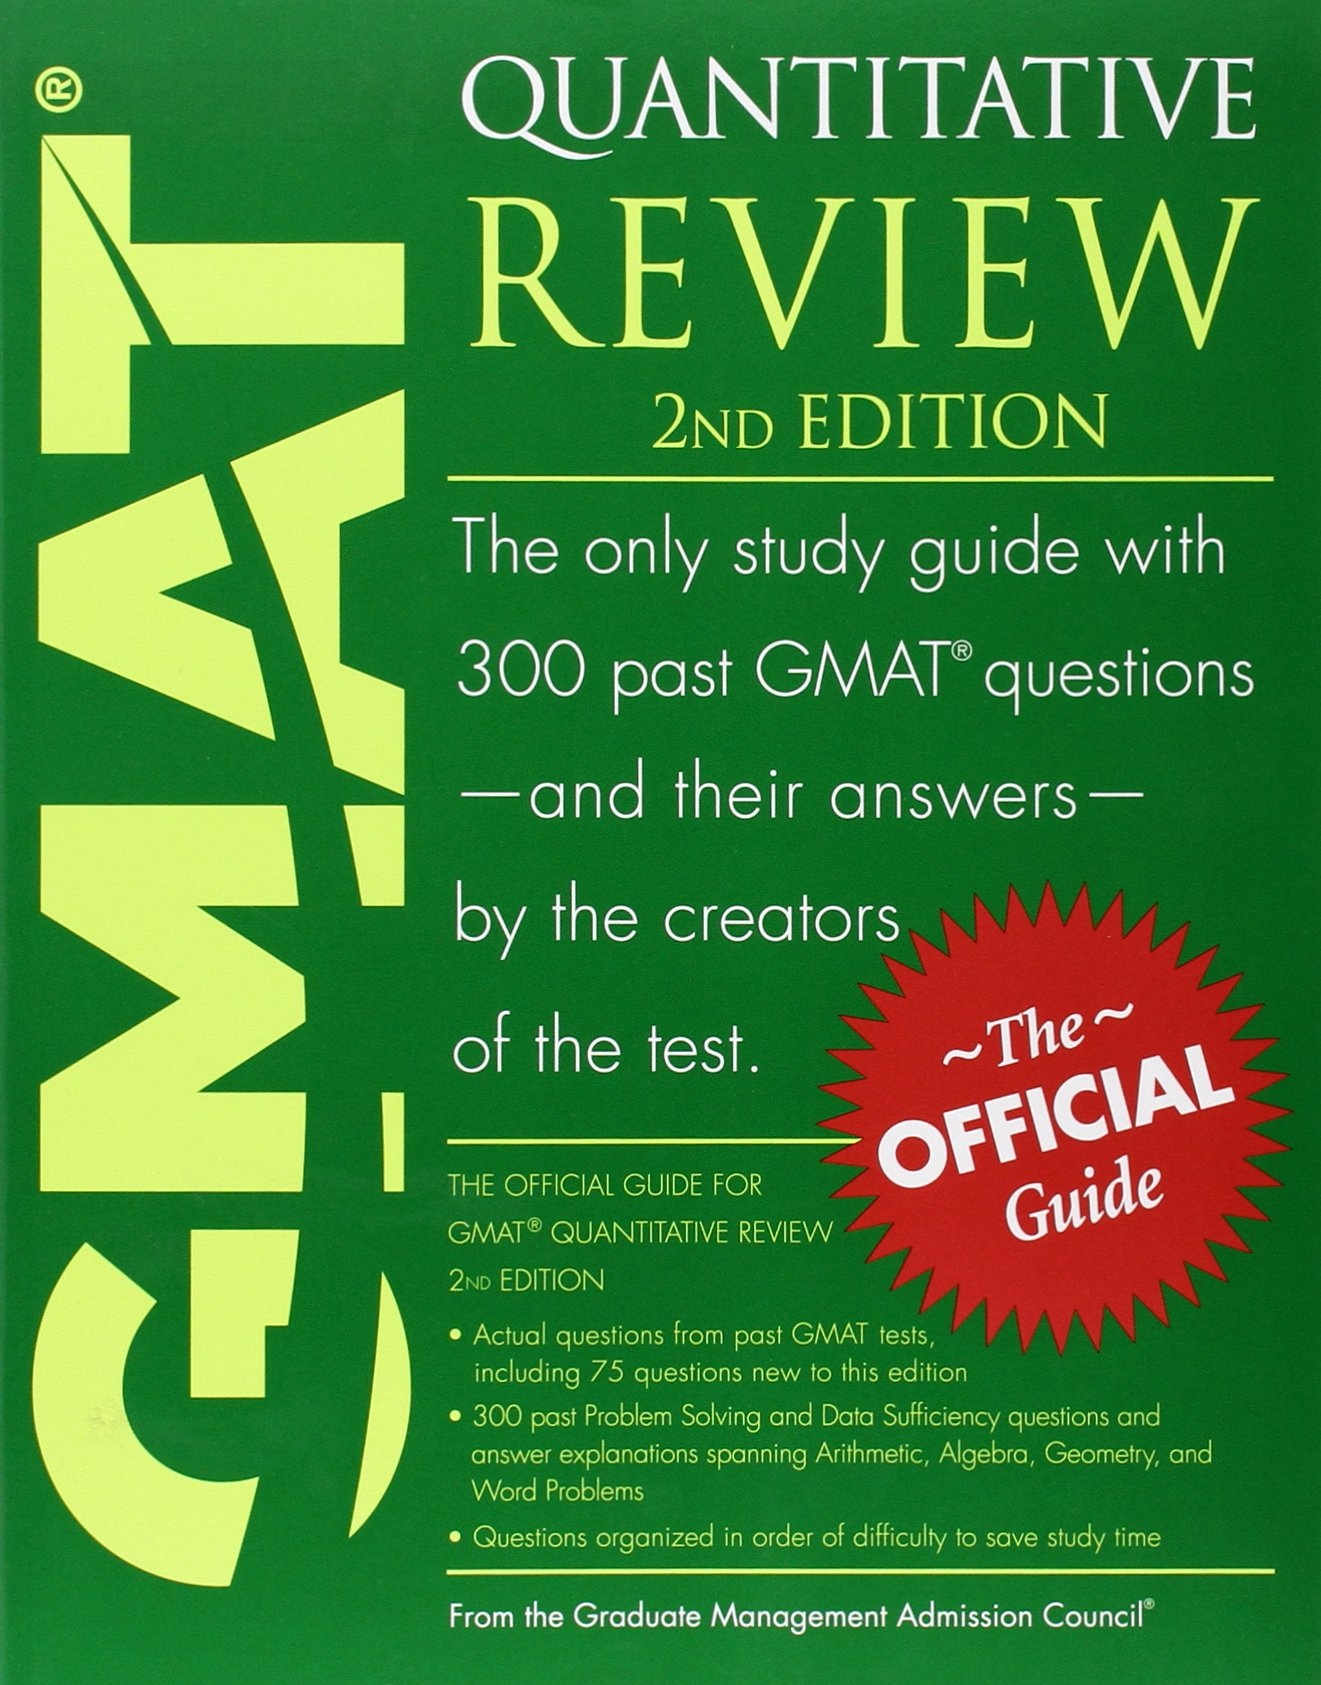 Pdf download) the official guide for gmat quantitative review 2nd.